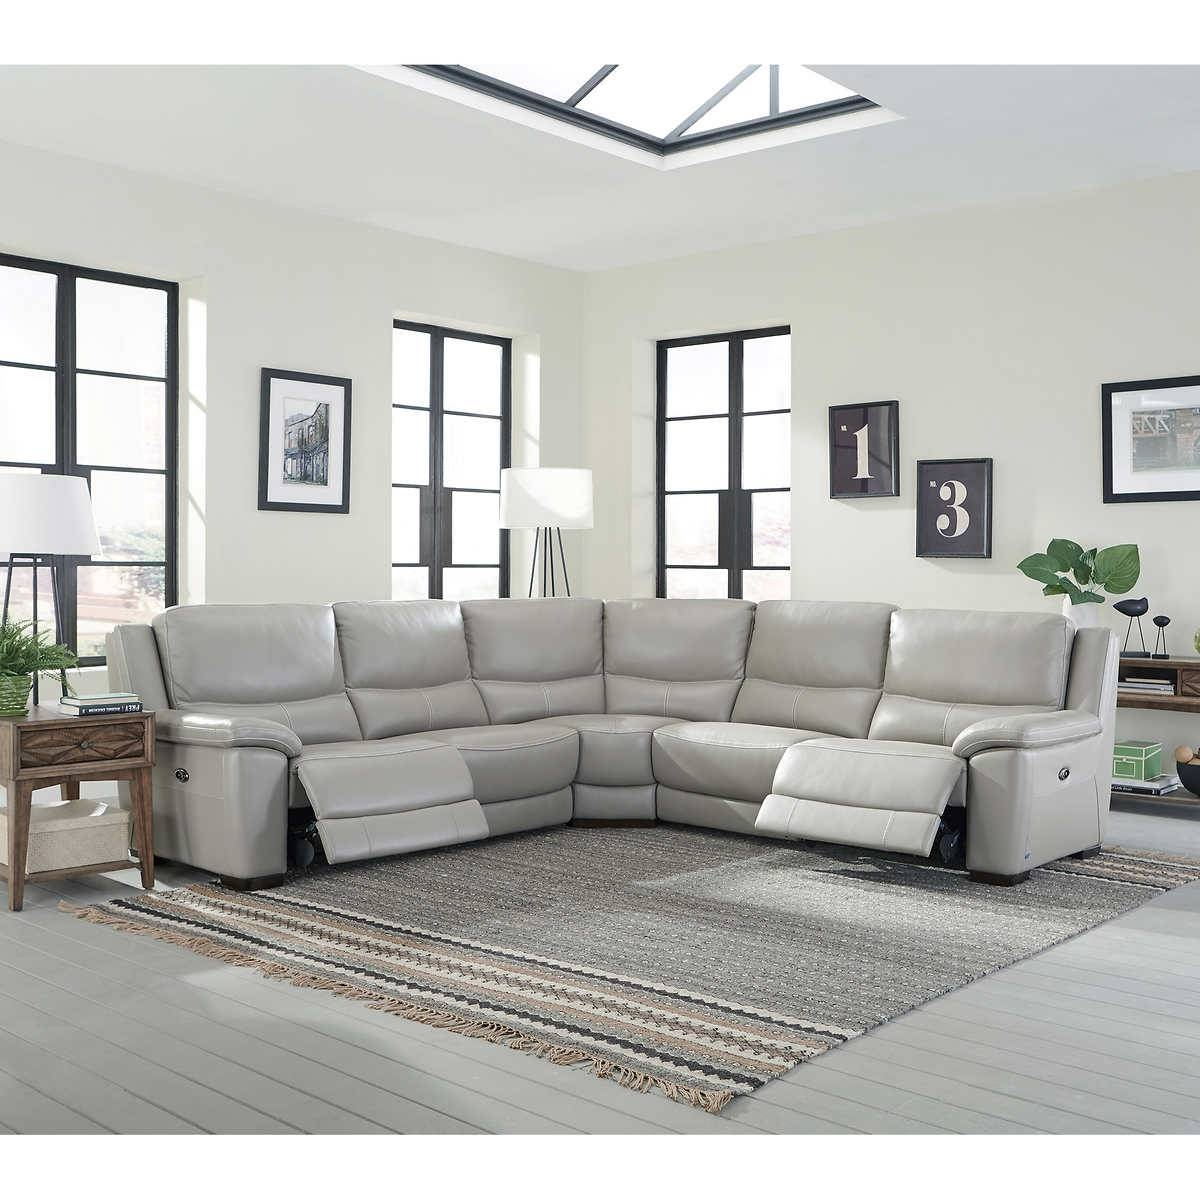 Sofas Center : Costco Power Reclining Sofa Recliner Berkline Sofas regarding Berkline Sectional Sofa (Image 21 of 30)